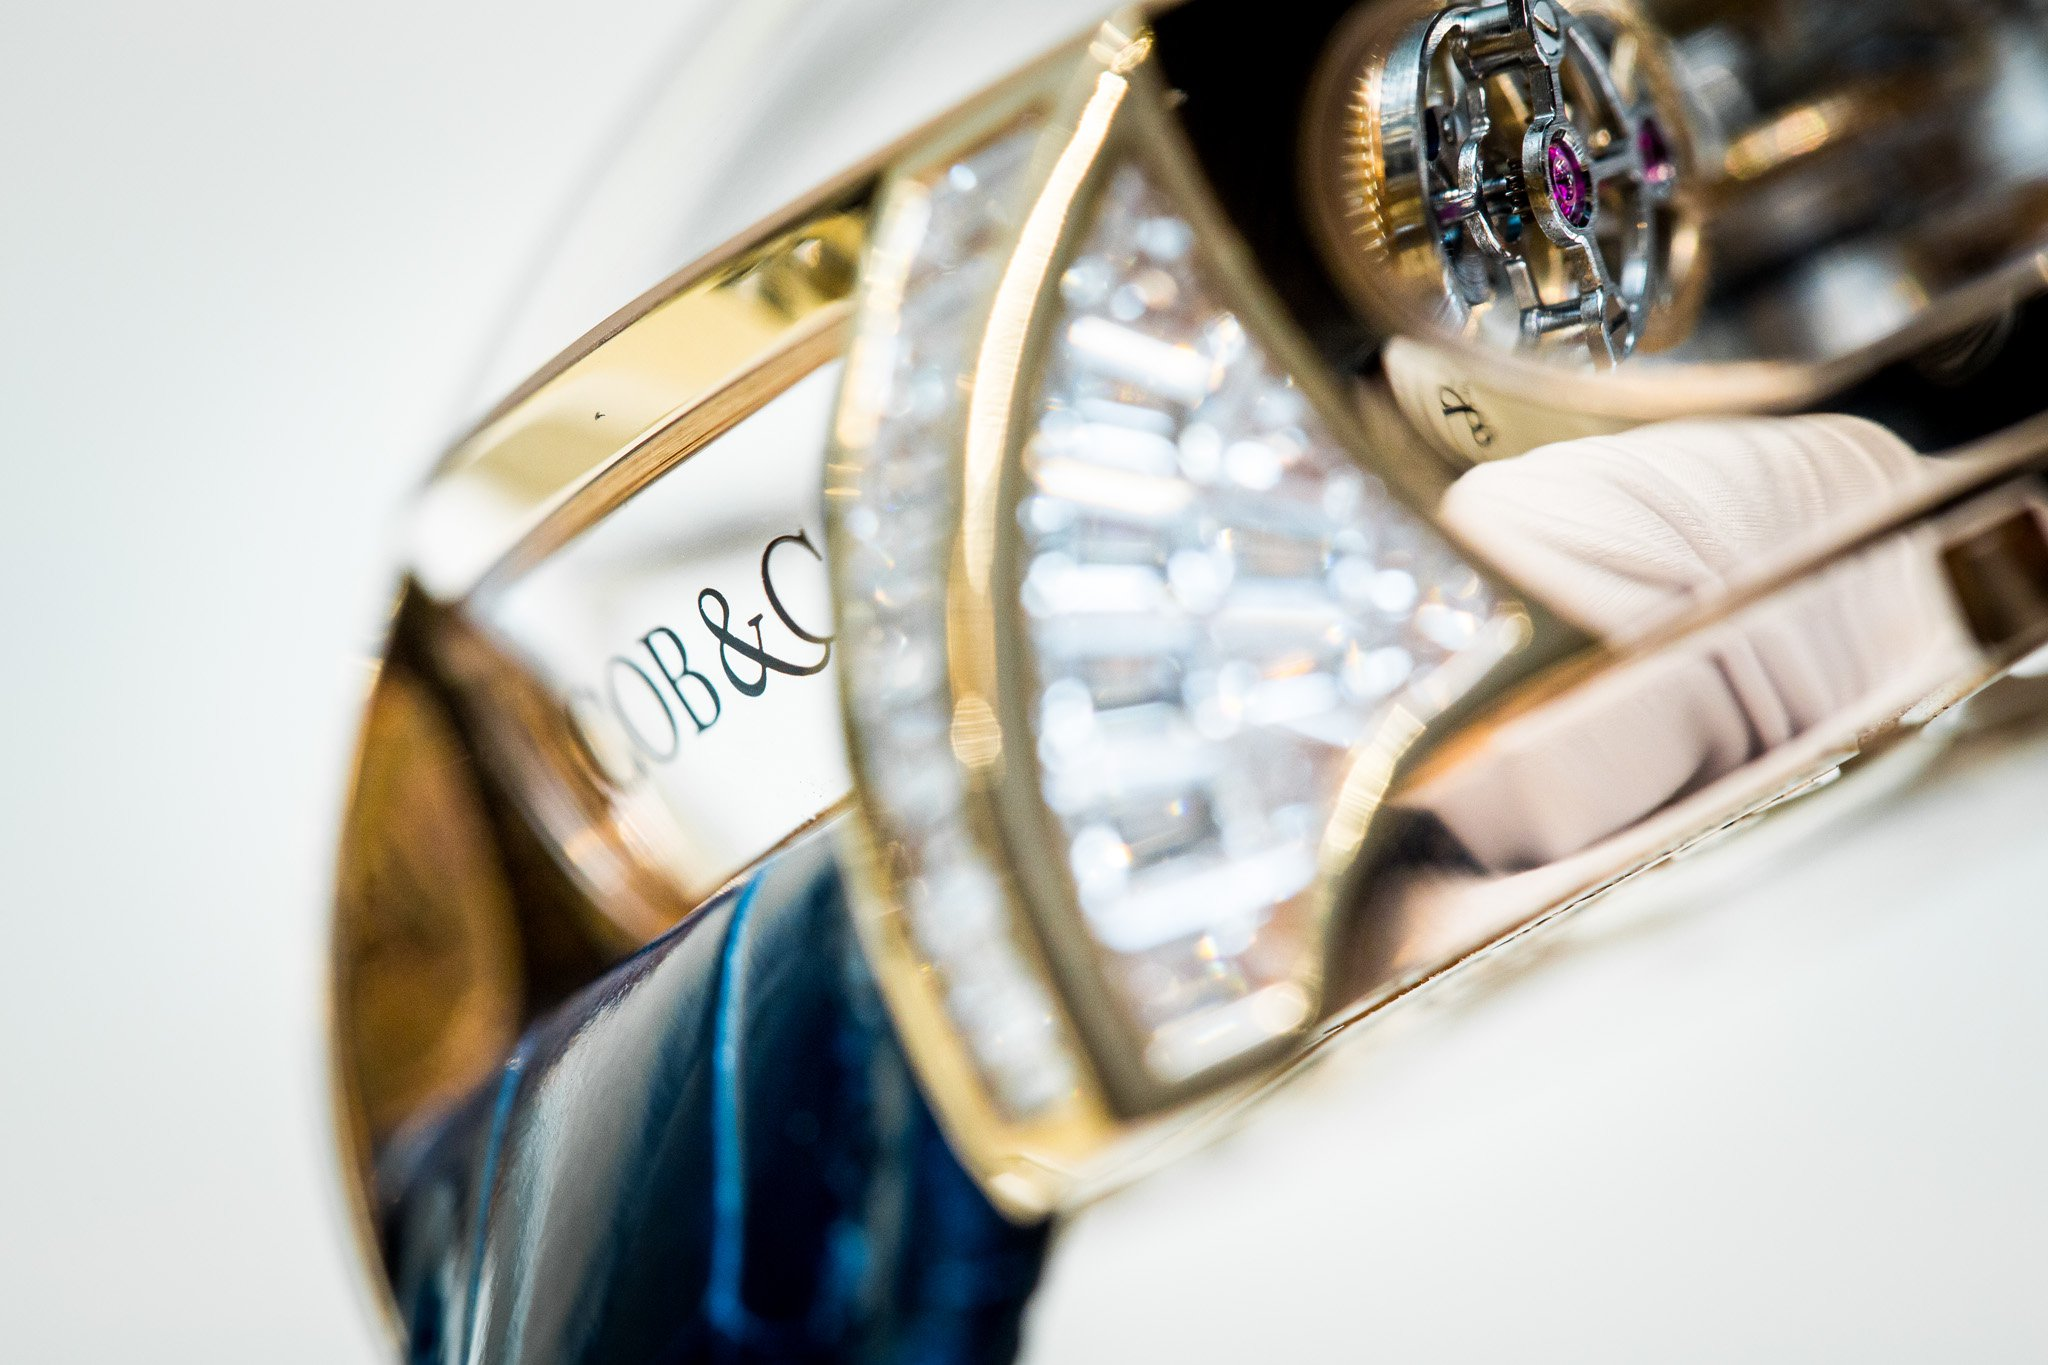 Jacob-Co-Astronomia-Tourbillon-Baguette-Watch-Baselworld-2015-Lugs